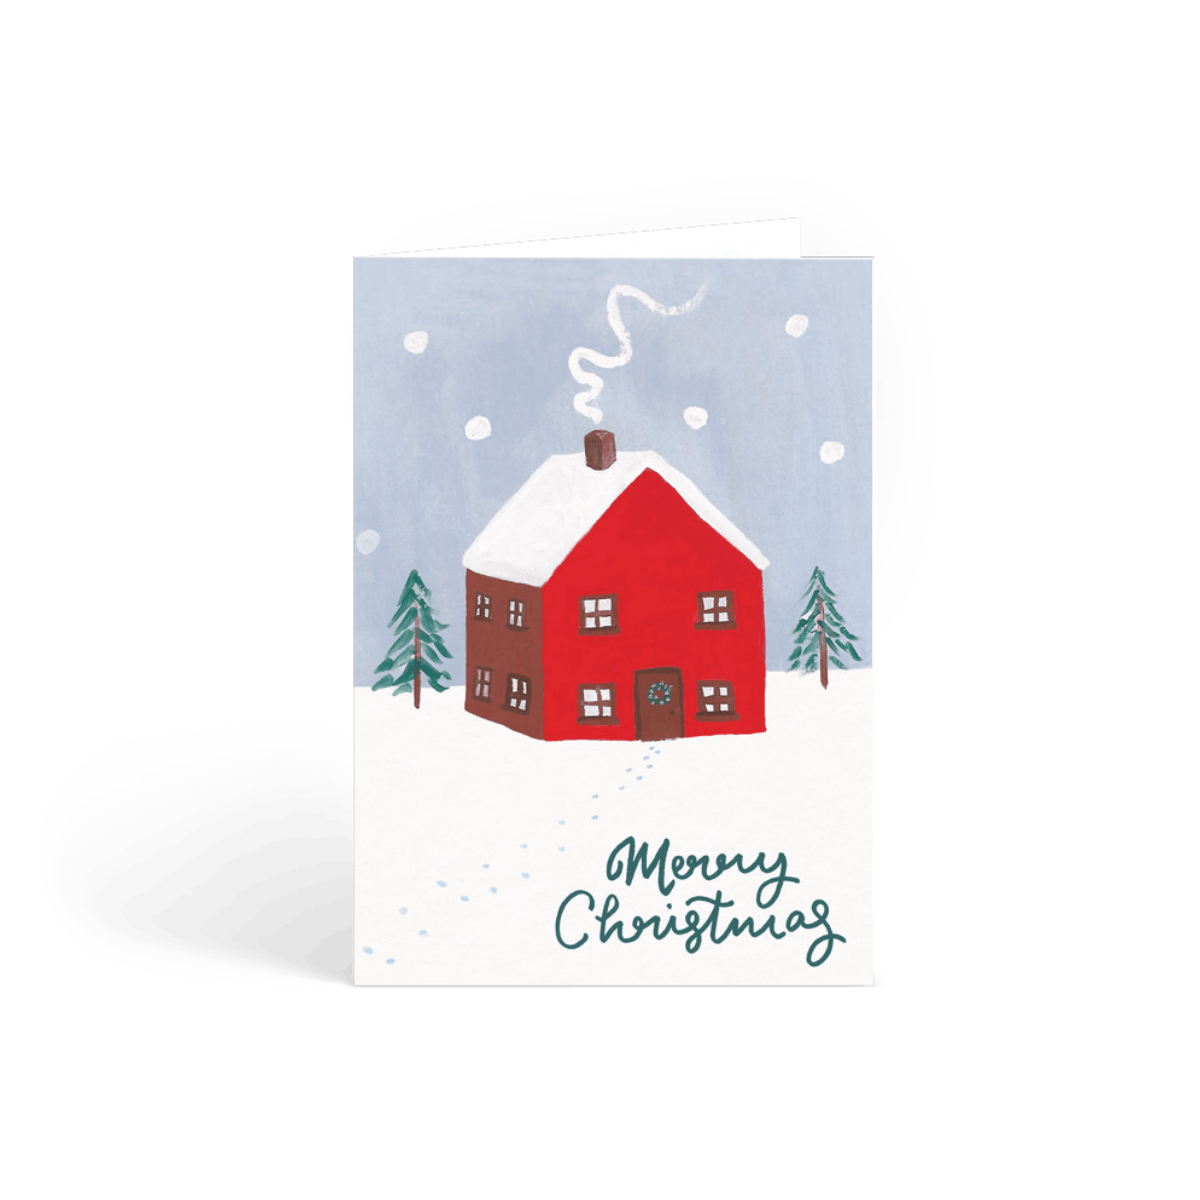 Https%3a%2f%2fwww.papier.com%2fproduct image%2f30166%2f2%2fchristmas cottage 7608 front 1509027896.png?ixlib=rb 1.1